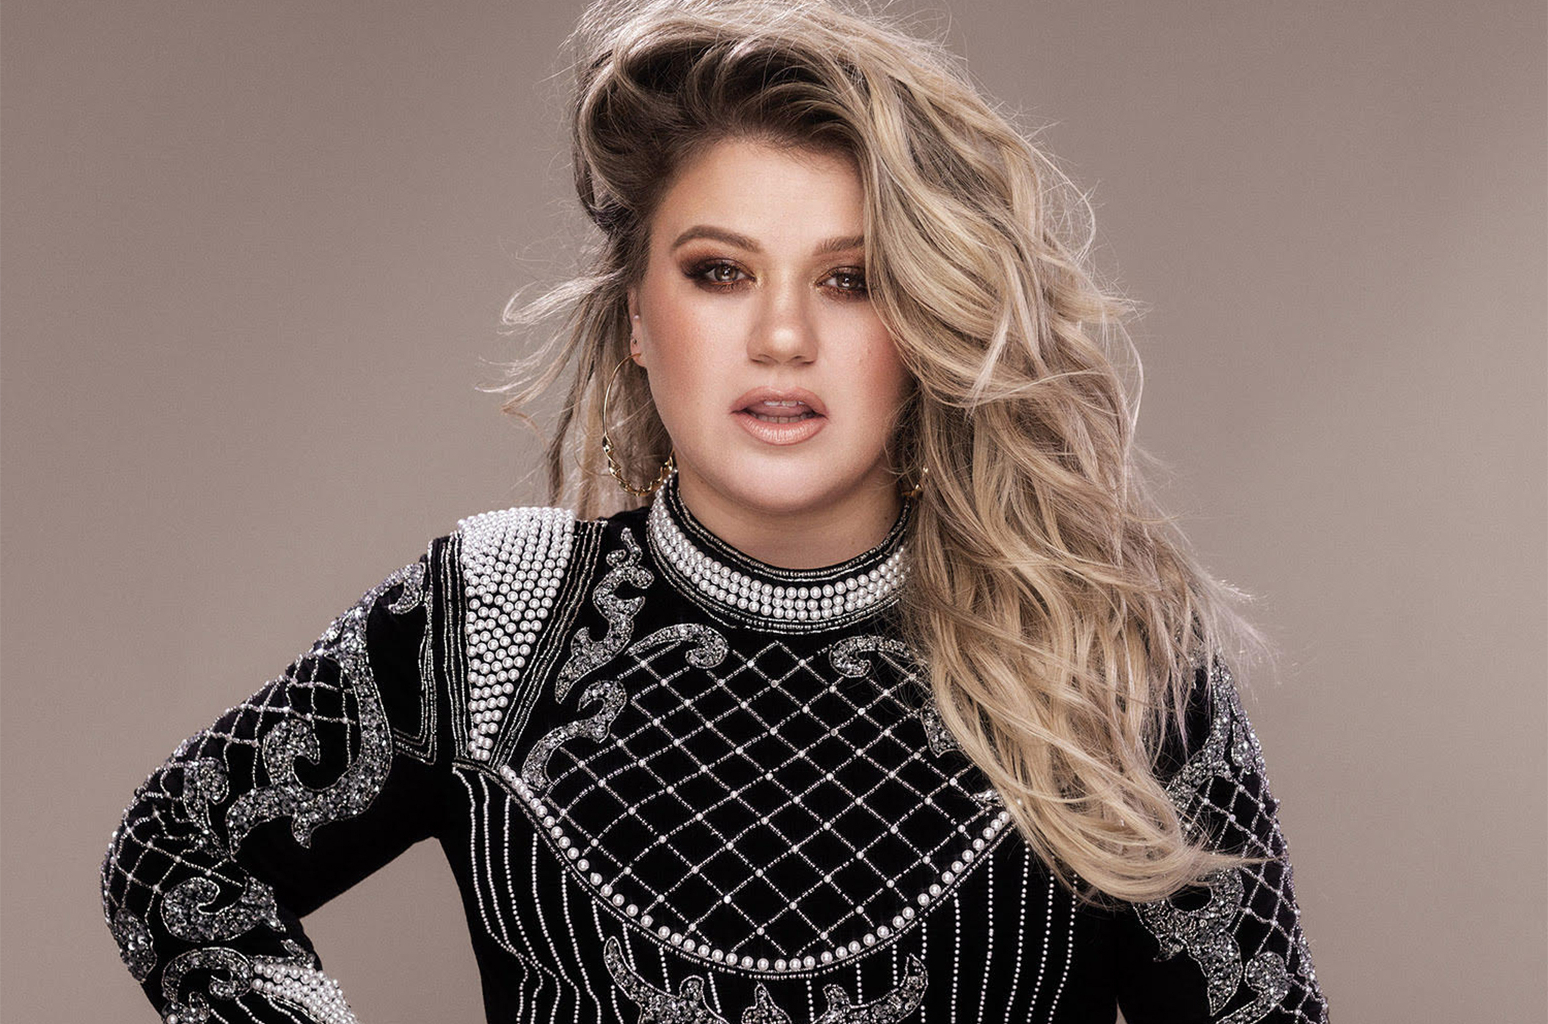 Kelly Clarkson Daytime Talk Show To Debut On Nbc Stations In Fall Throughout Kelly Clarkson Hairstyles Short (View 17 of 25)